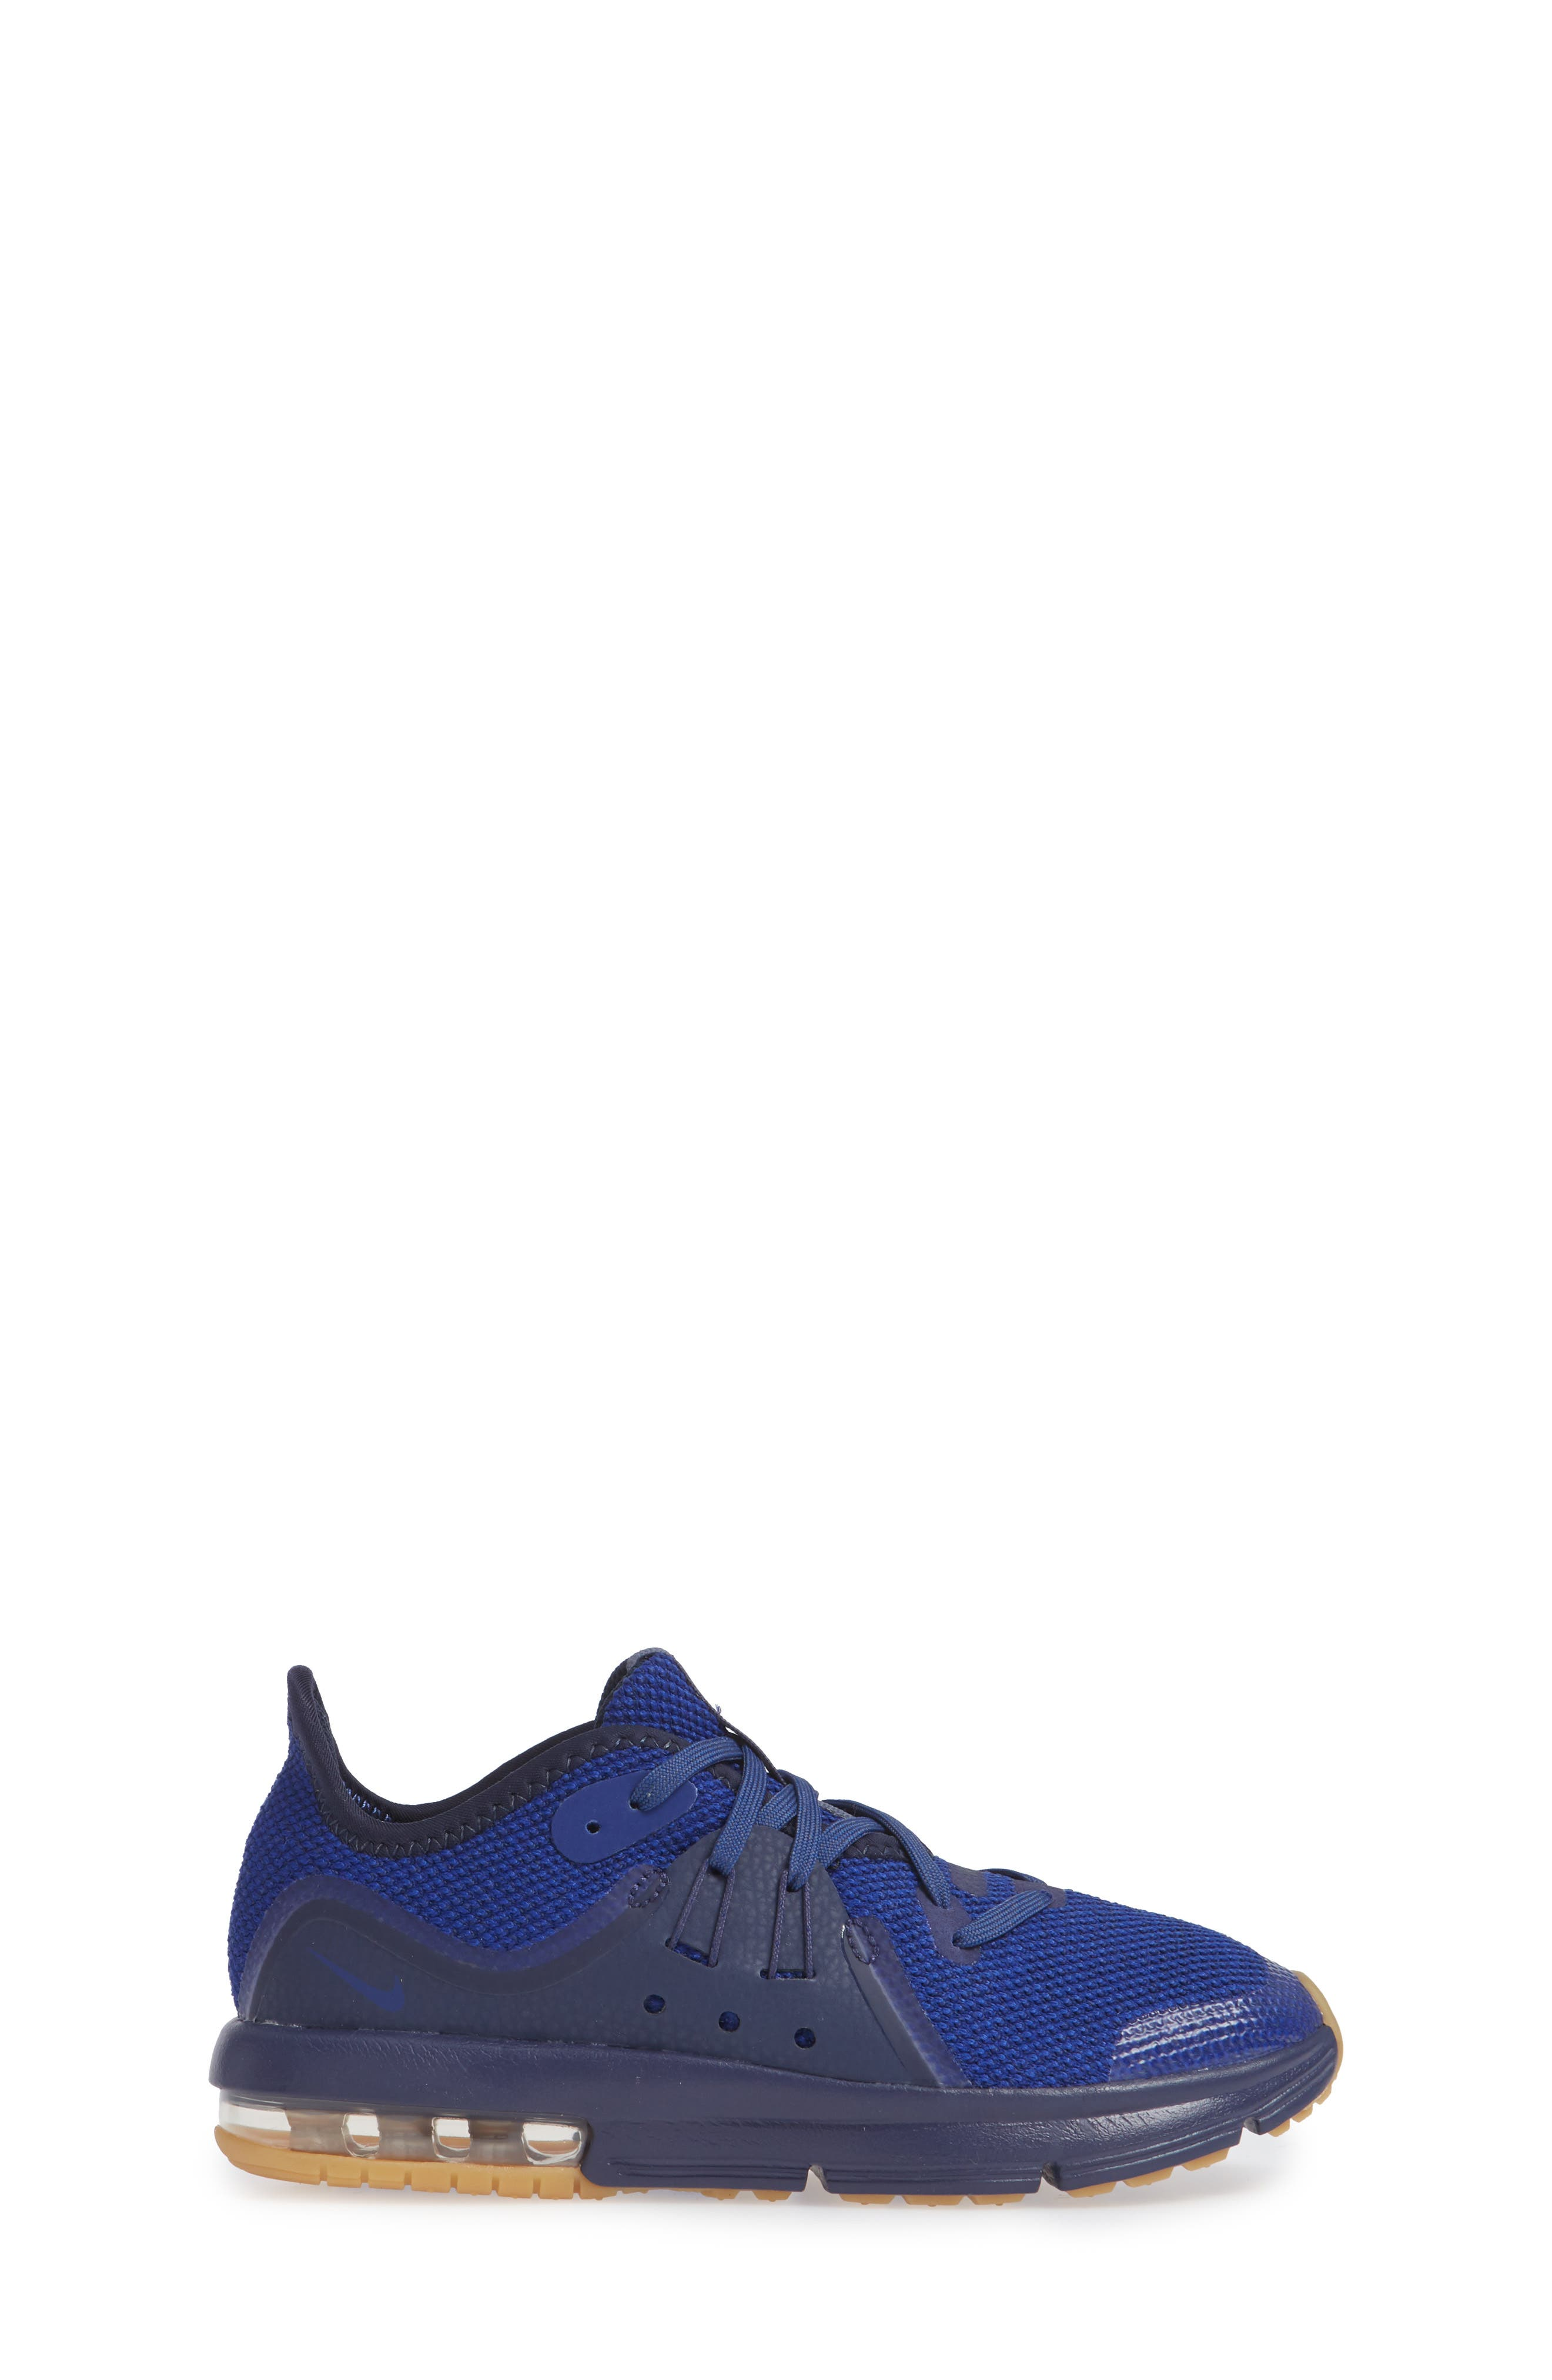 Air Max Sequent 3 GS Running Shoe,                             Alternate thumbnail 5, color,                             Obsidian/ Blue/ Indigo